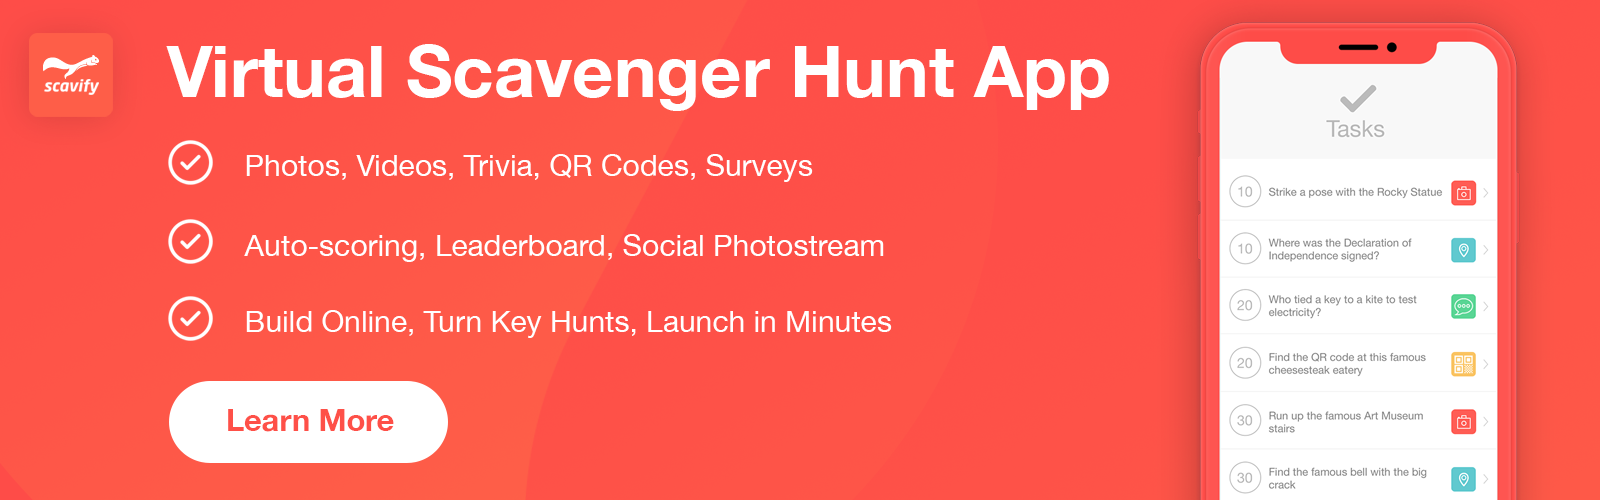 outdoor team building activities scavenger hunt Scavify